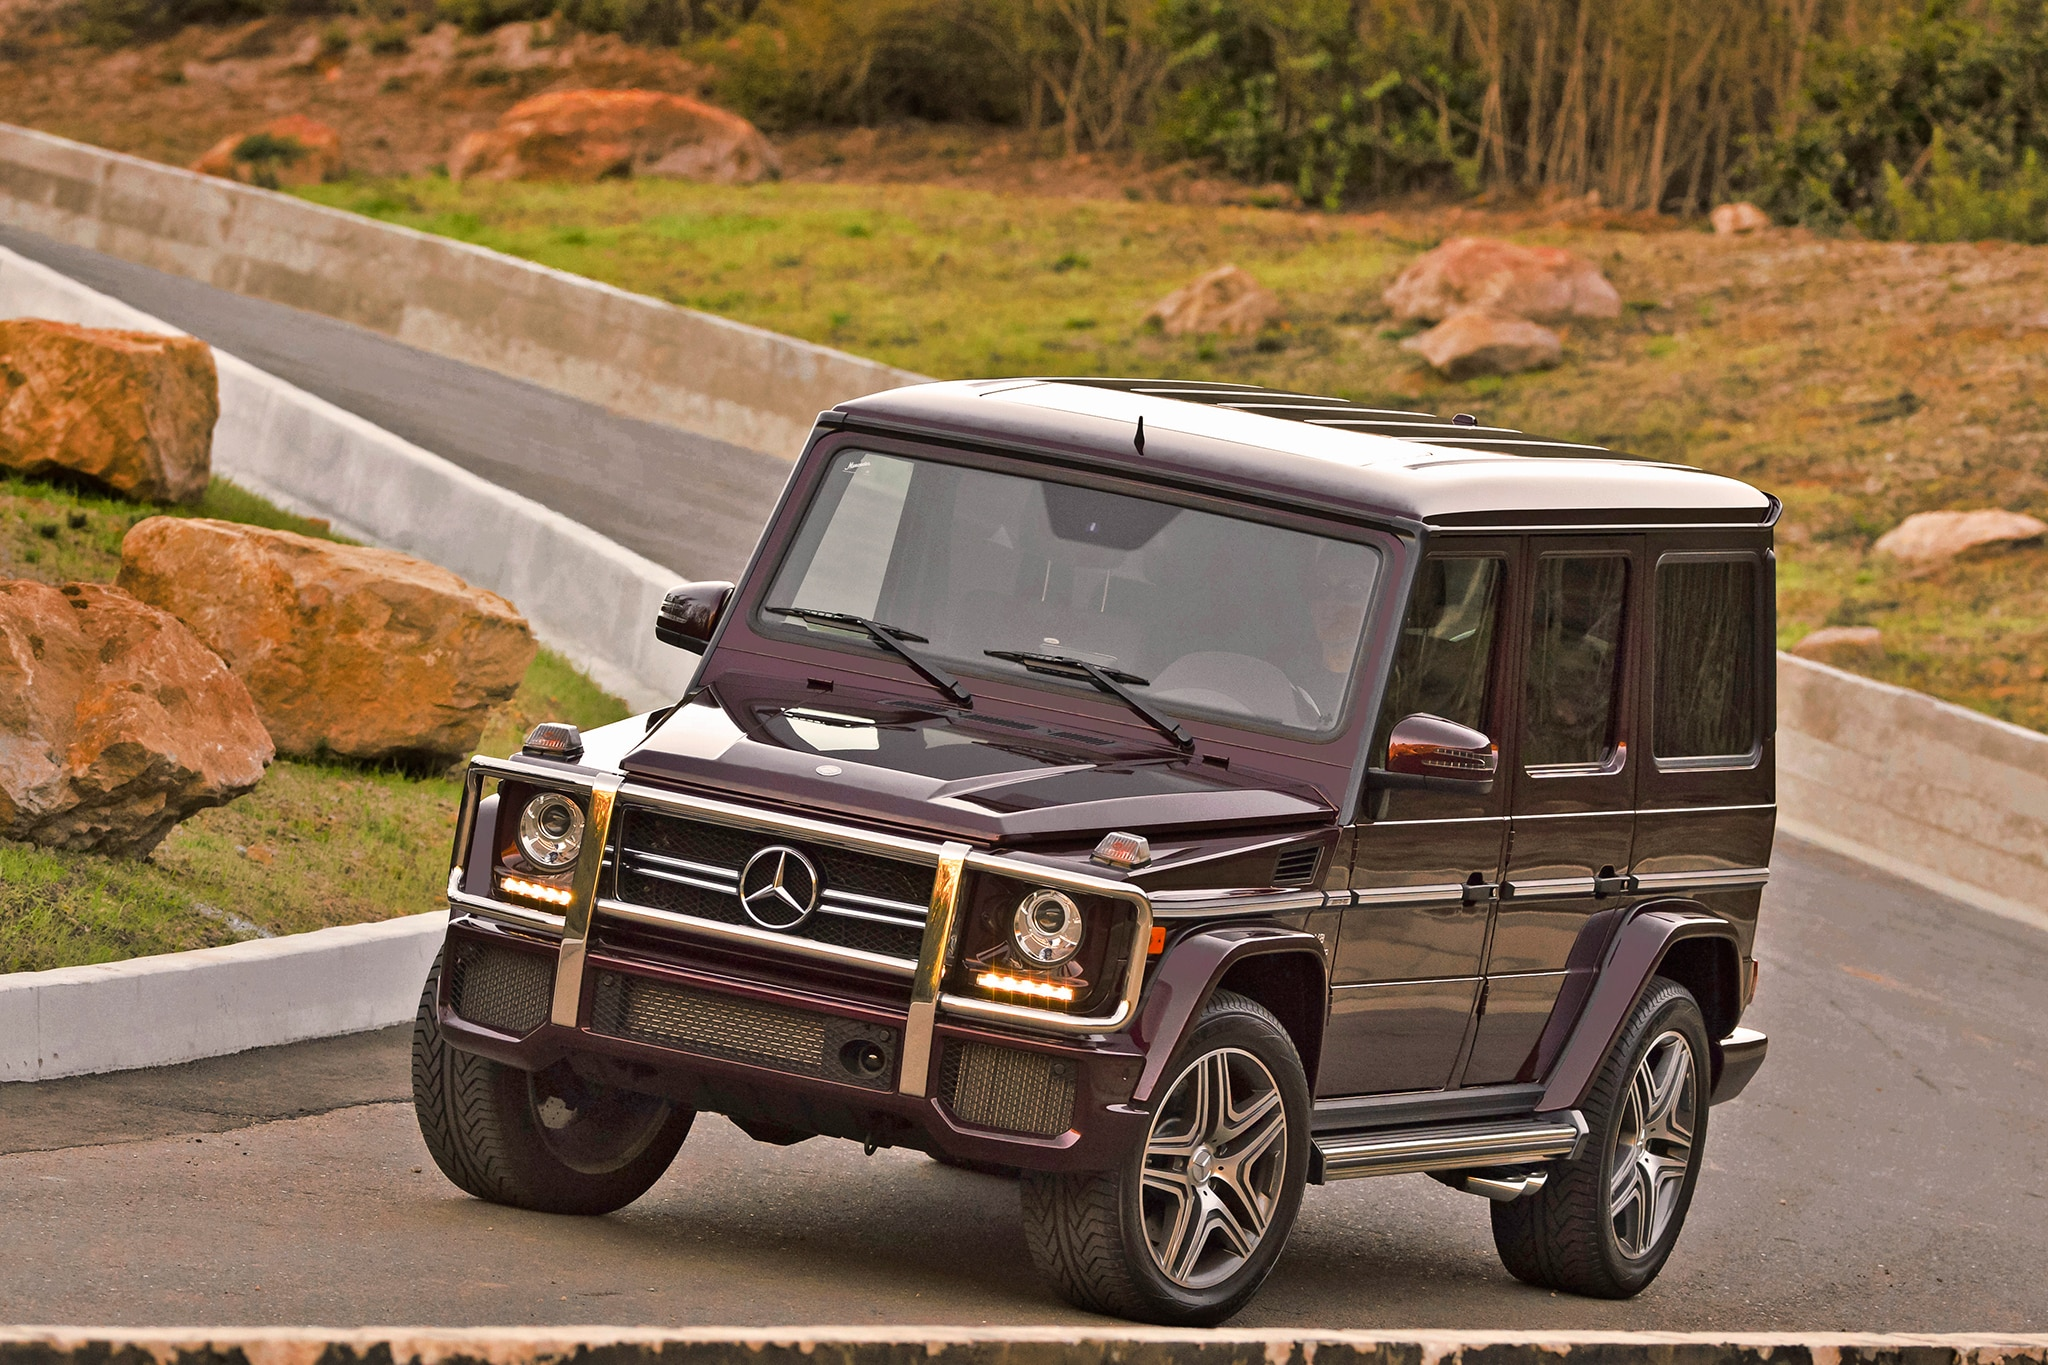 mansory modifies mercedes benz g63 amg 6x6 automobile